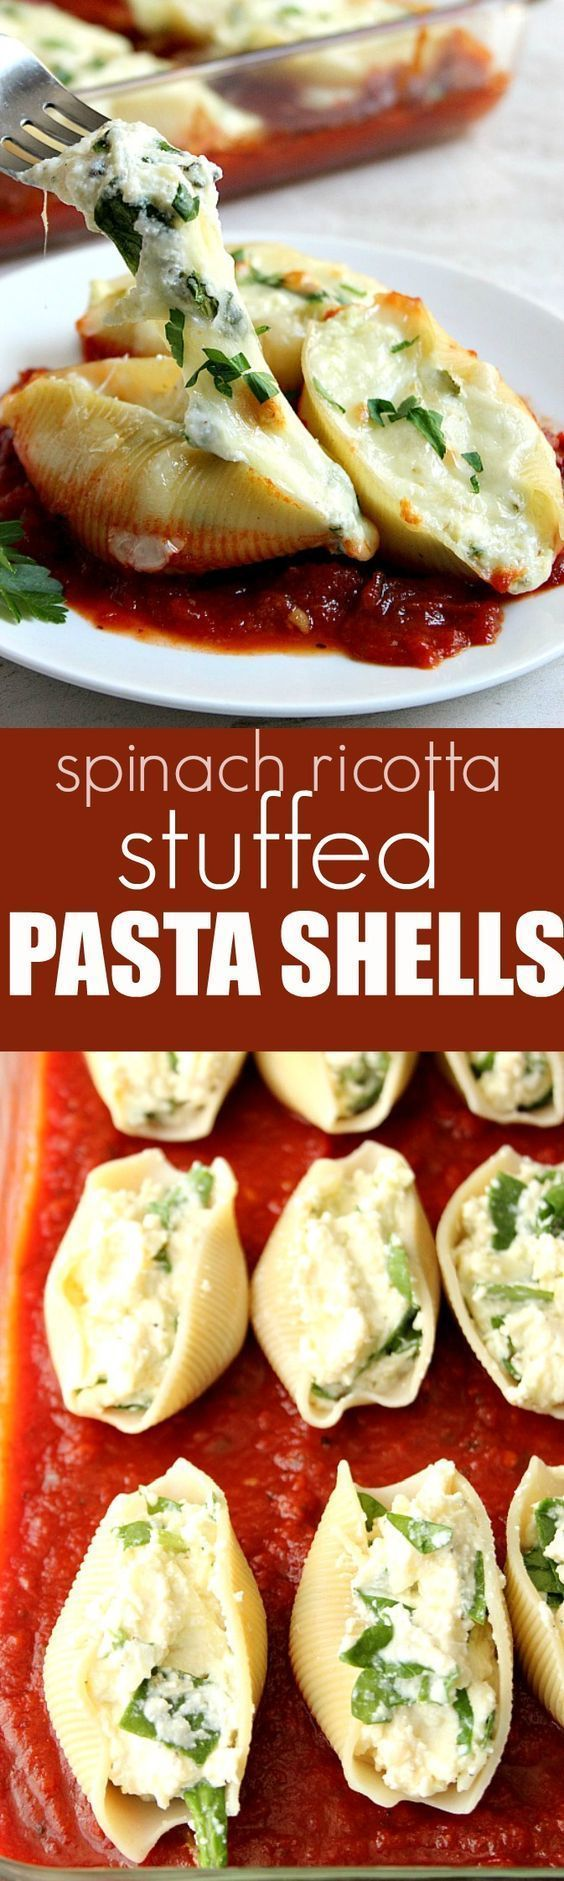 Spinach and Ricotta Stuffed Pasta Shells http://www.crunchycreamysweet.com/2016/06/08/spinach-and-ricotta-stuffed-pasta-shells-recipe/ Bake for 20 to 25 minutes or until the sauce is bubbling on the edges. Let sit for 10 minutes in room temperature before serving.